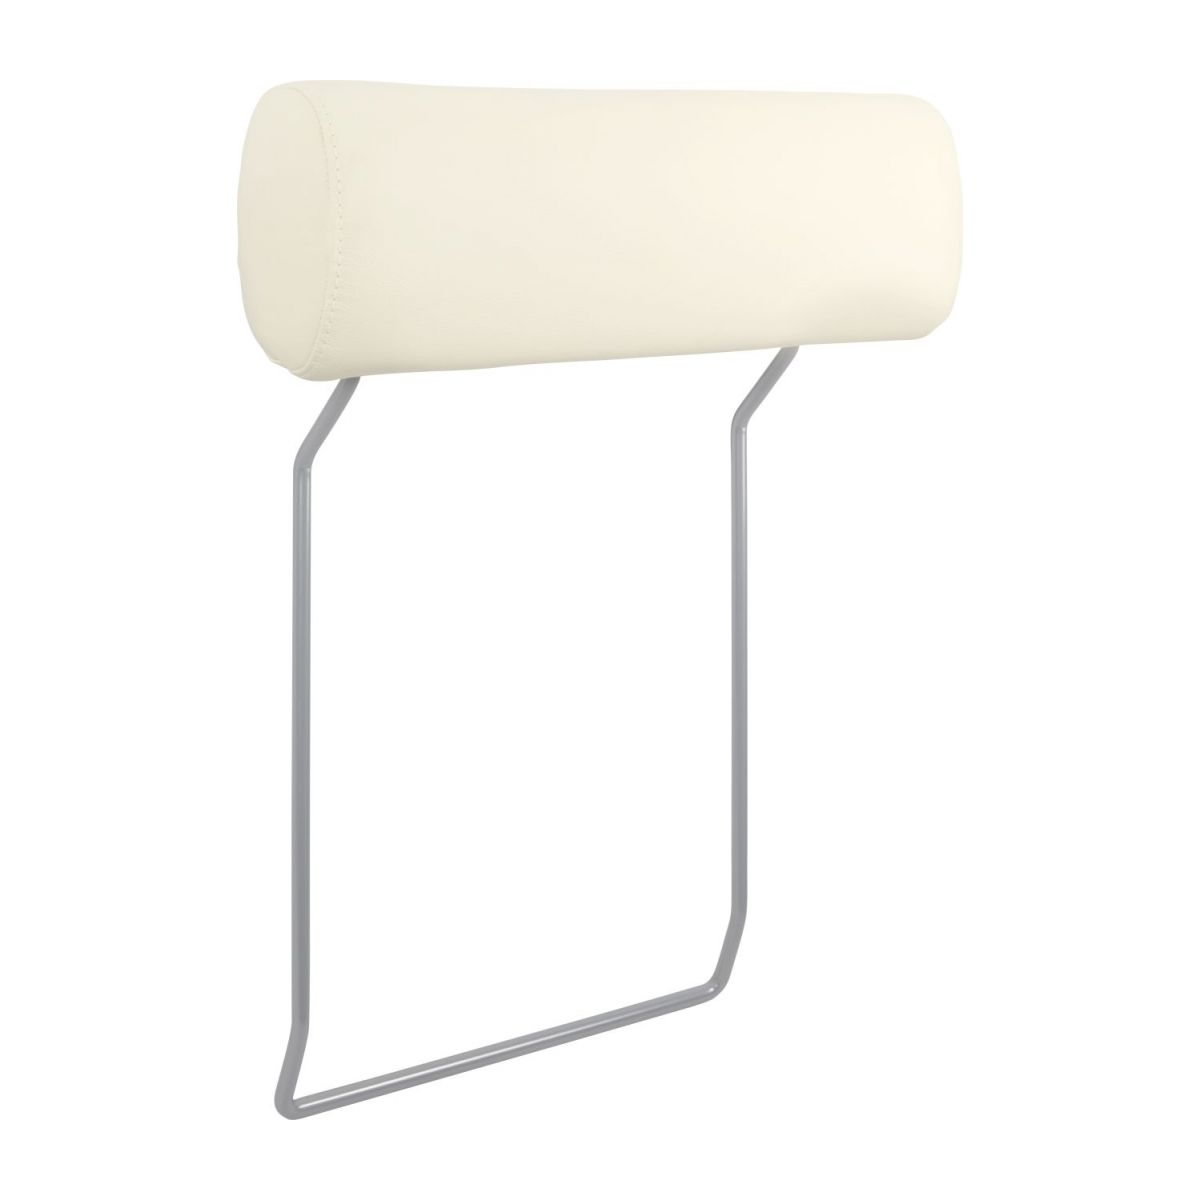 Headrest in Eton veined leather, cream n°1